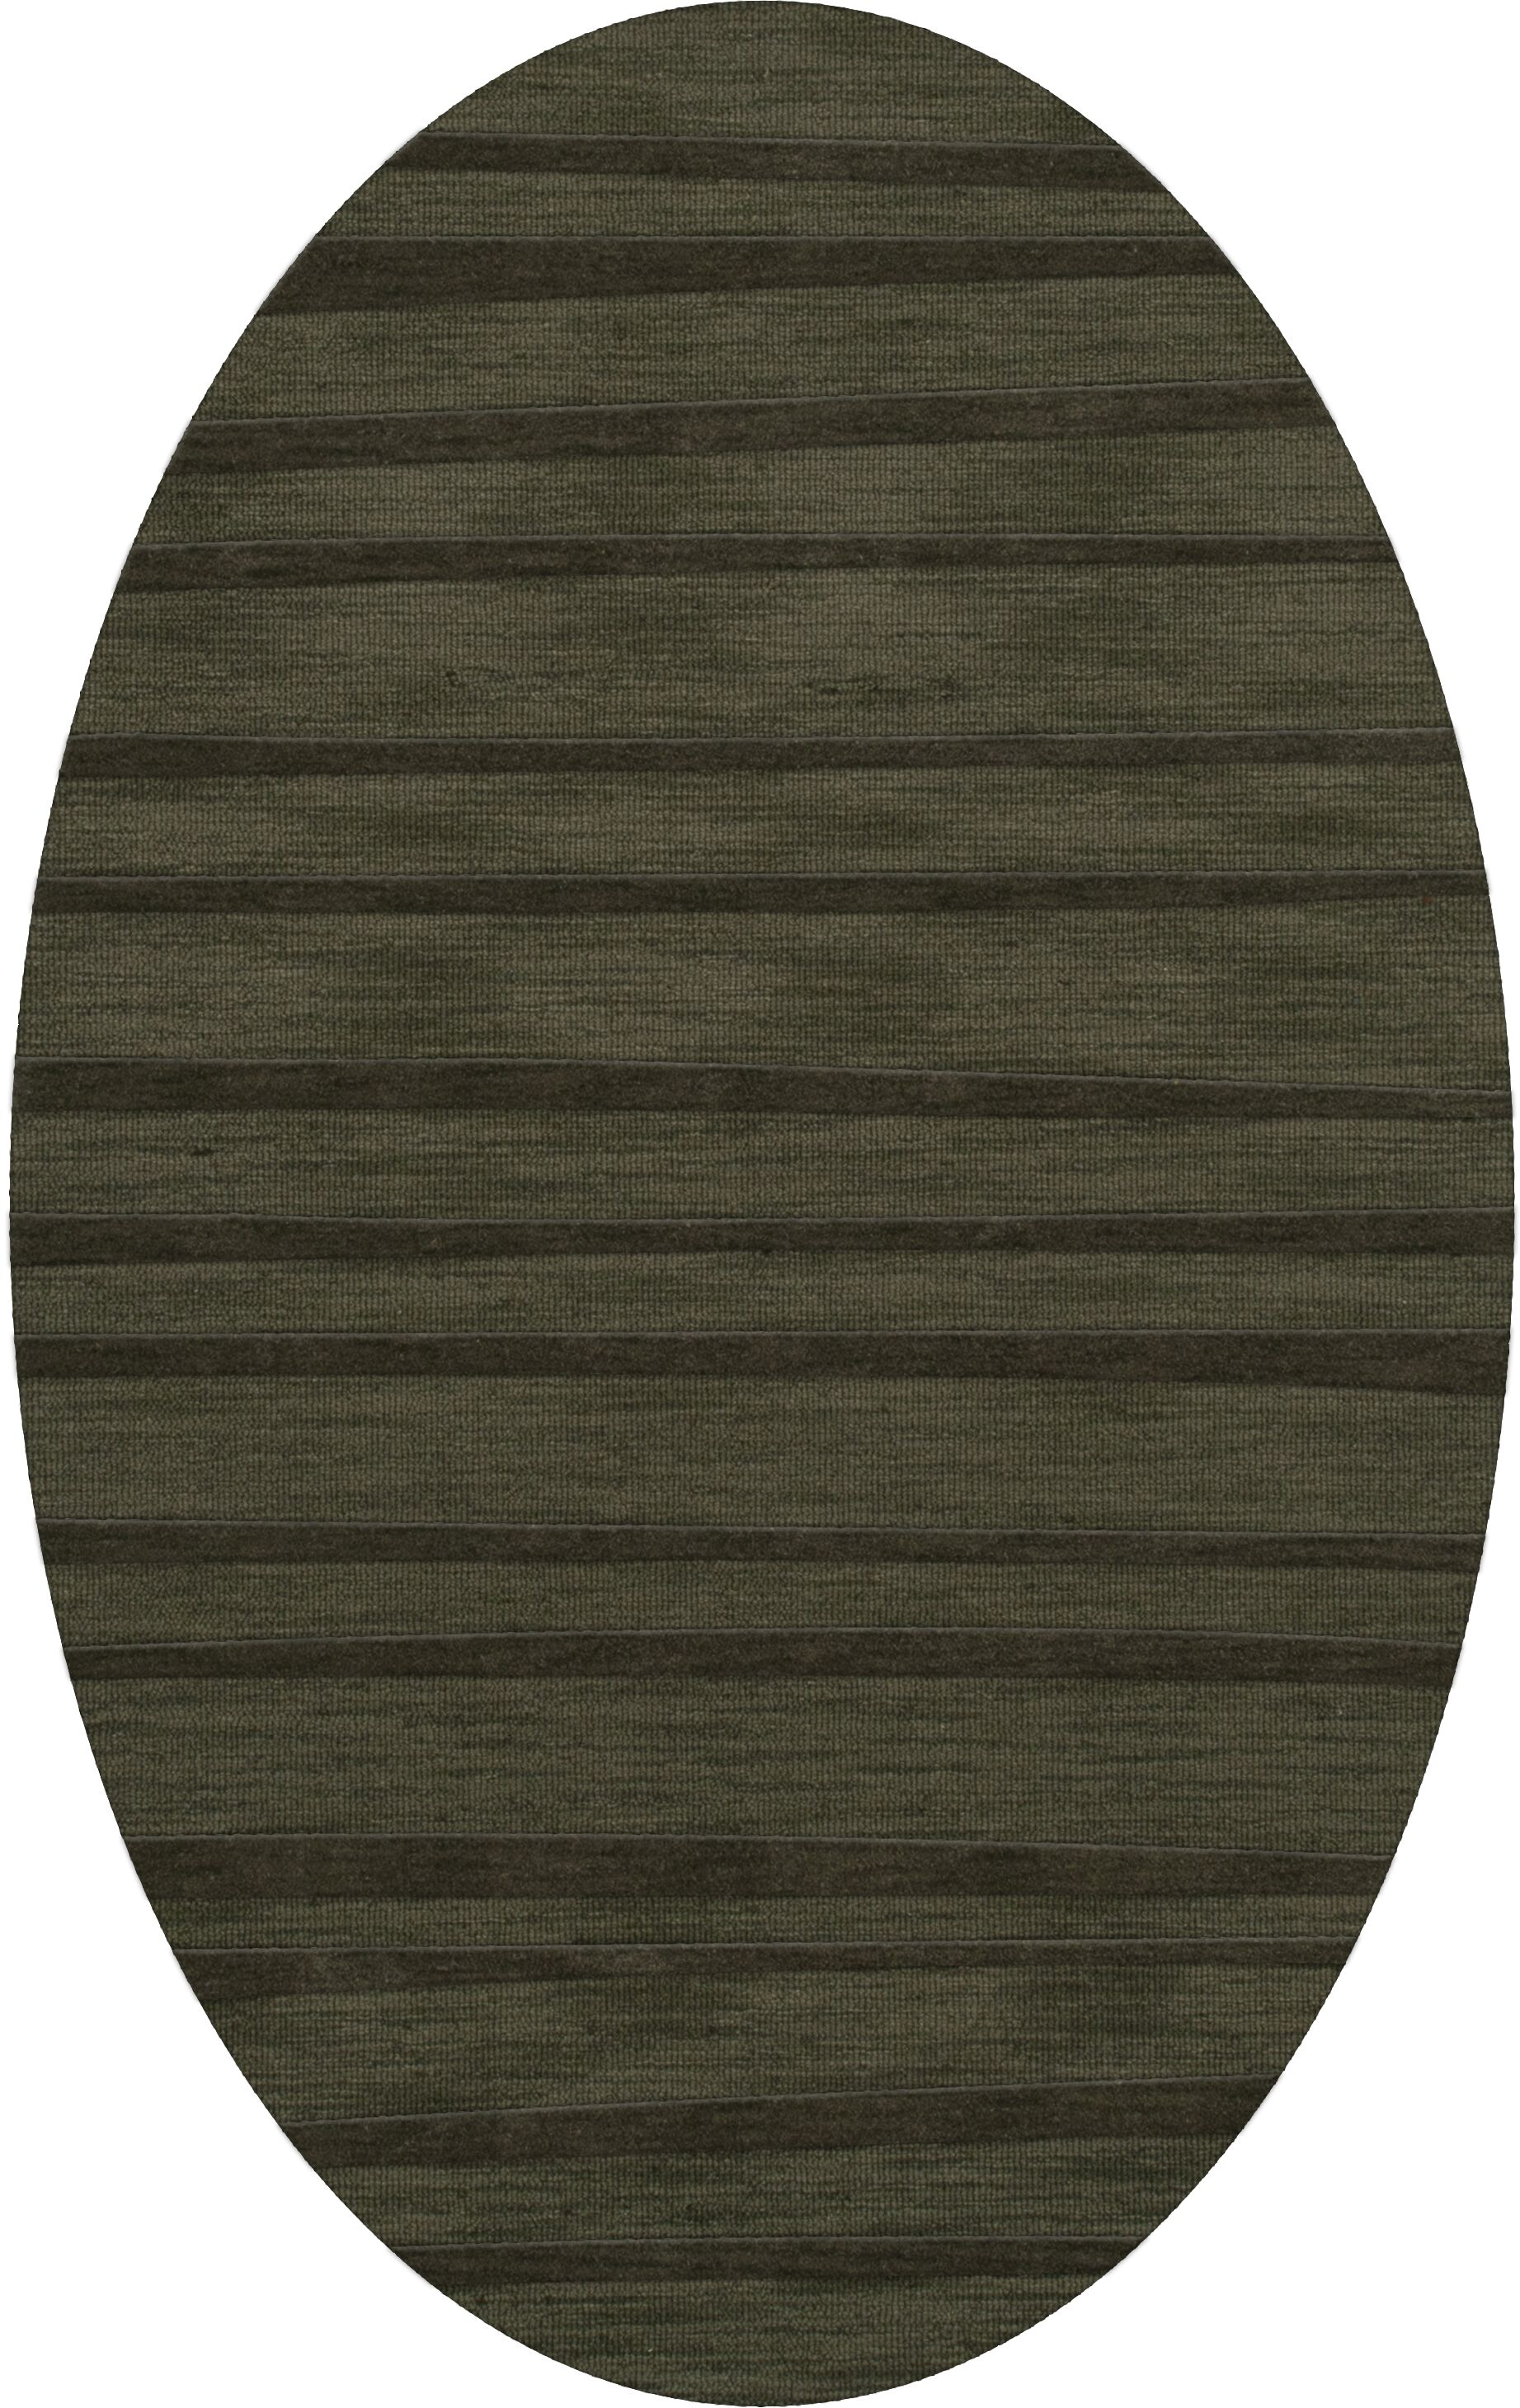 Dover Tufted Wool Fern Area Rug Rug Size: Oval 4' x 6'